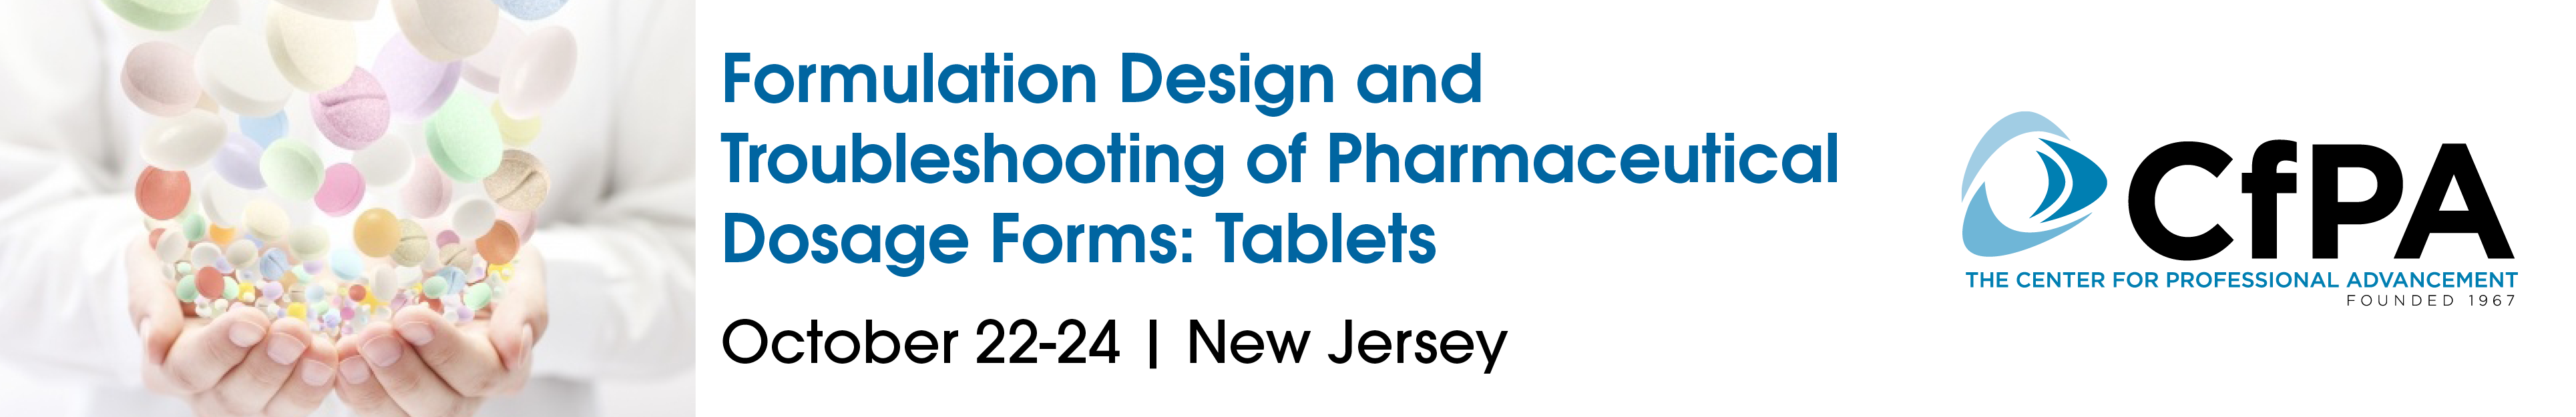 Formulation Design and Troubleshooting of Pharmaceutical Dosage Forms: Tablets